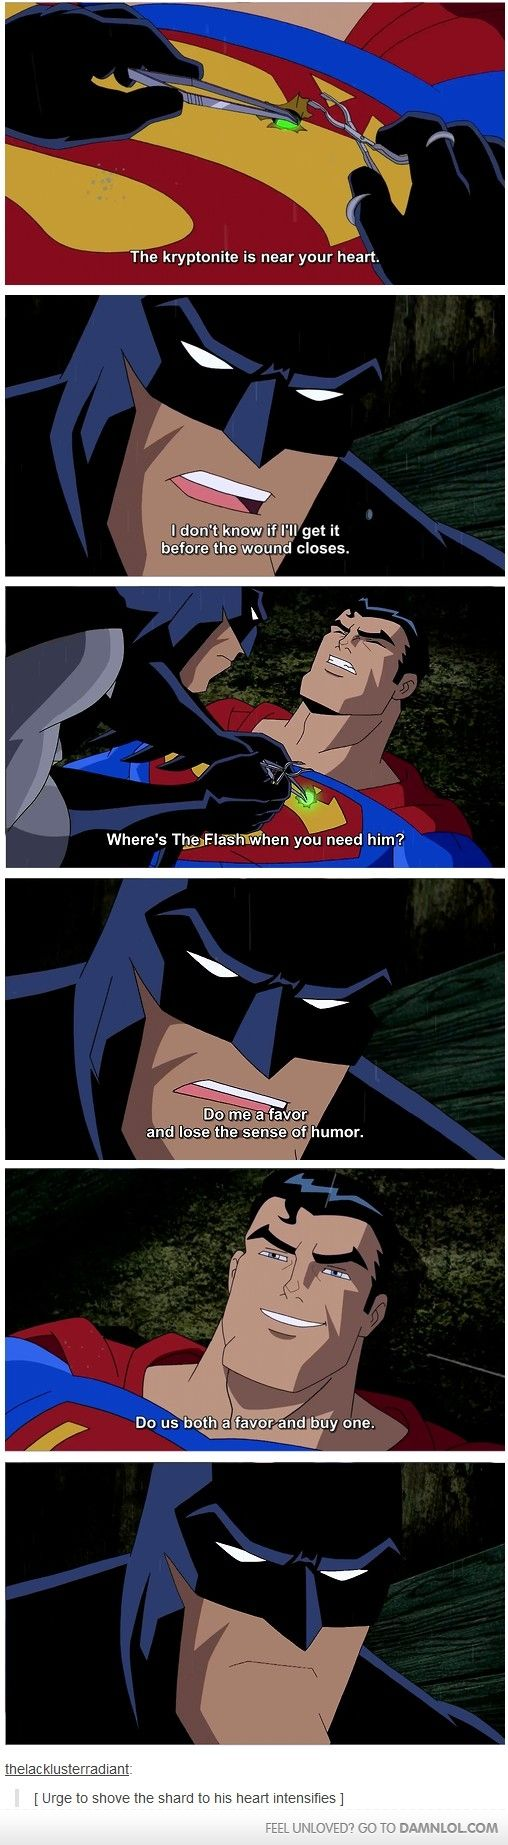 I HATE when superman does his 'im so cool and batman sucks' thing. He's not as cool as batman!